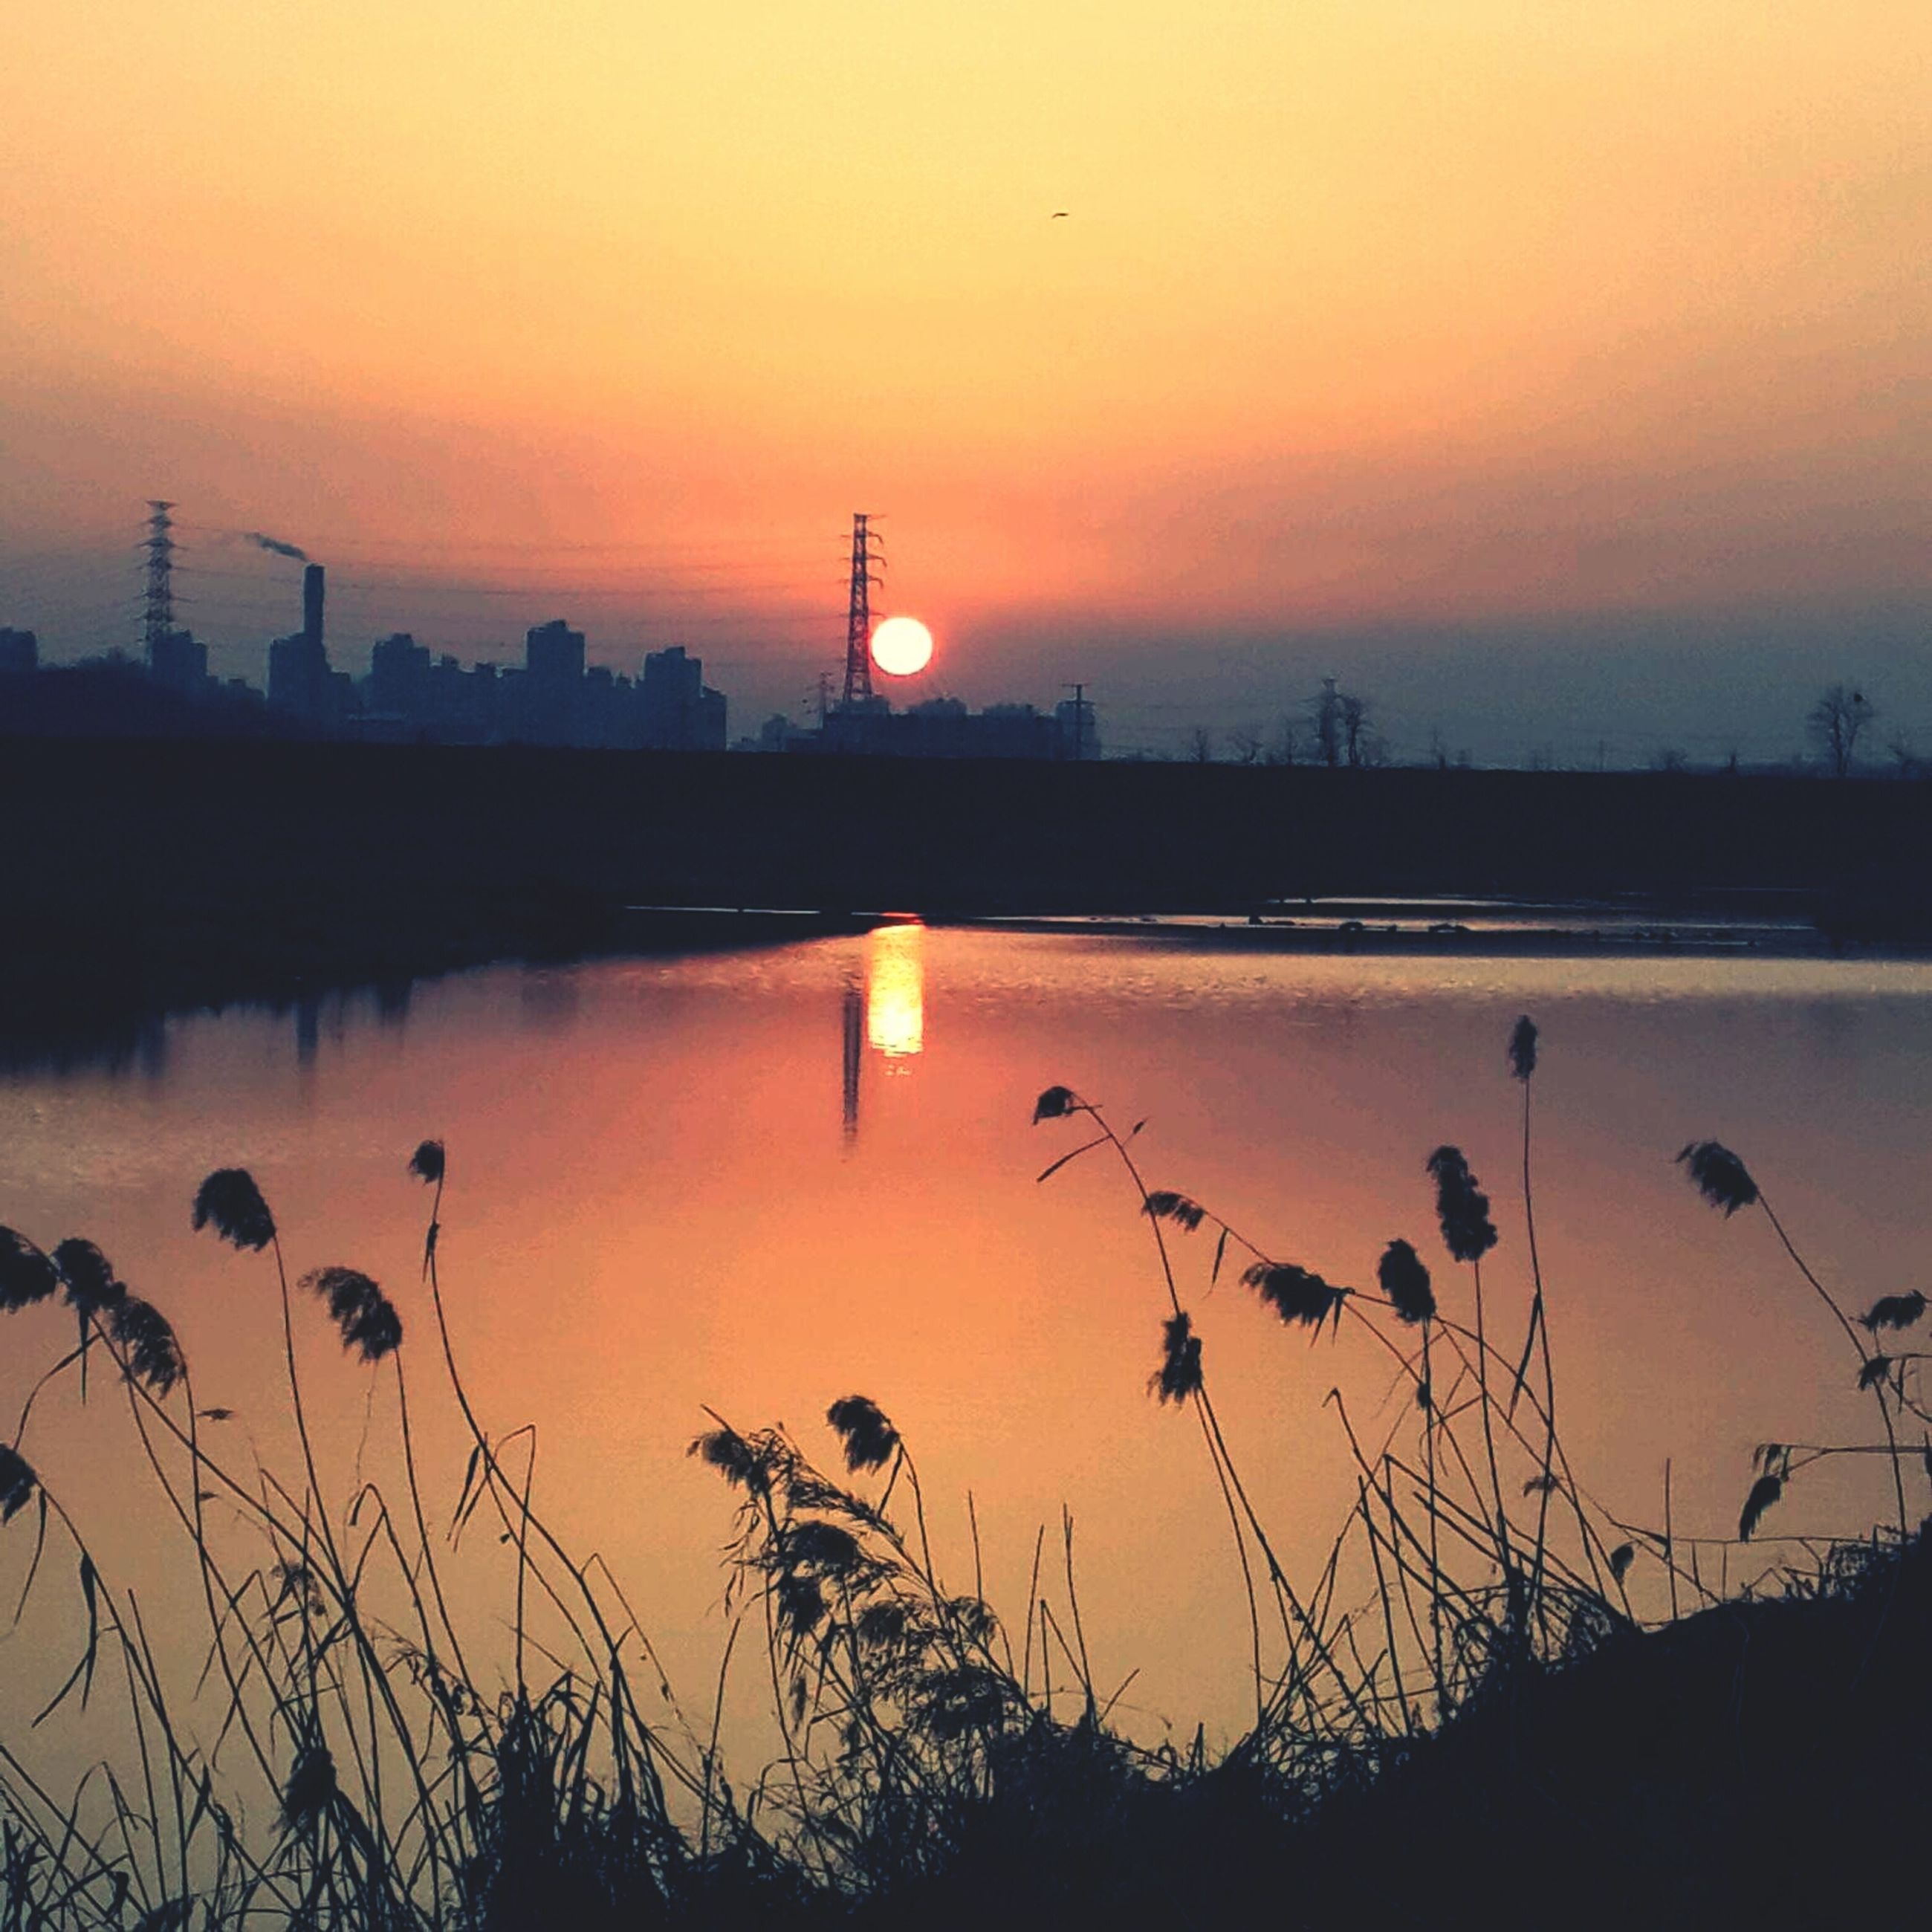 sunset, orange color, silhouette, water, scenics, tranquil scene, tranquility, beauty in nature, nature, idyllic, sky, sun, clear sky, reflection, lake, electricity pylon, river, plant, copy space, outdoors